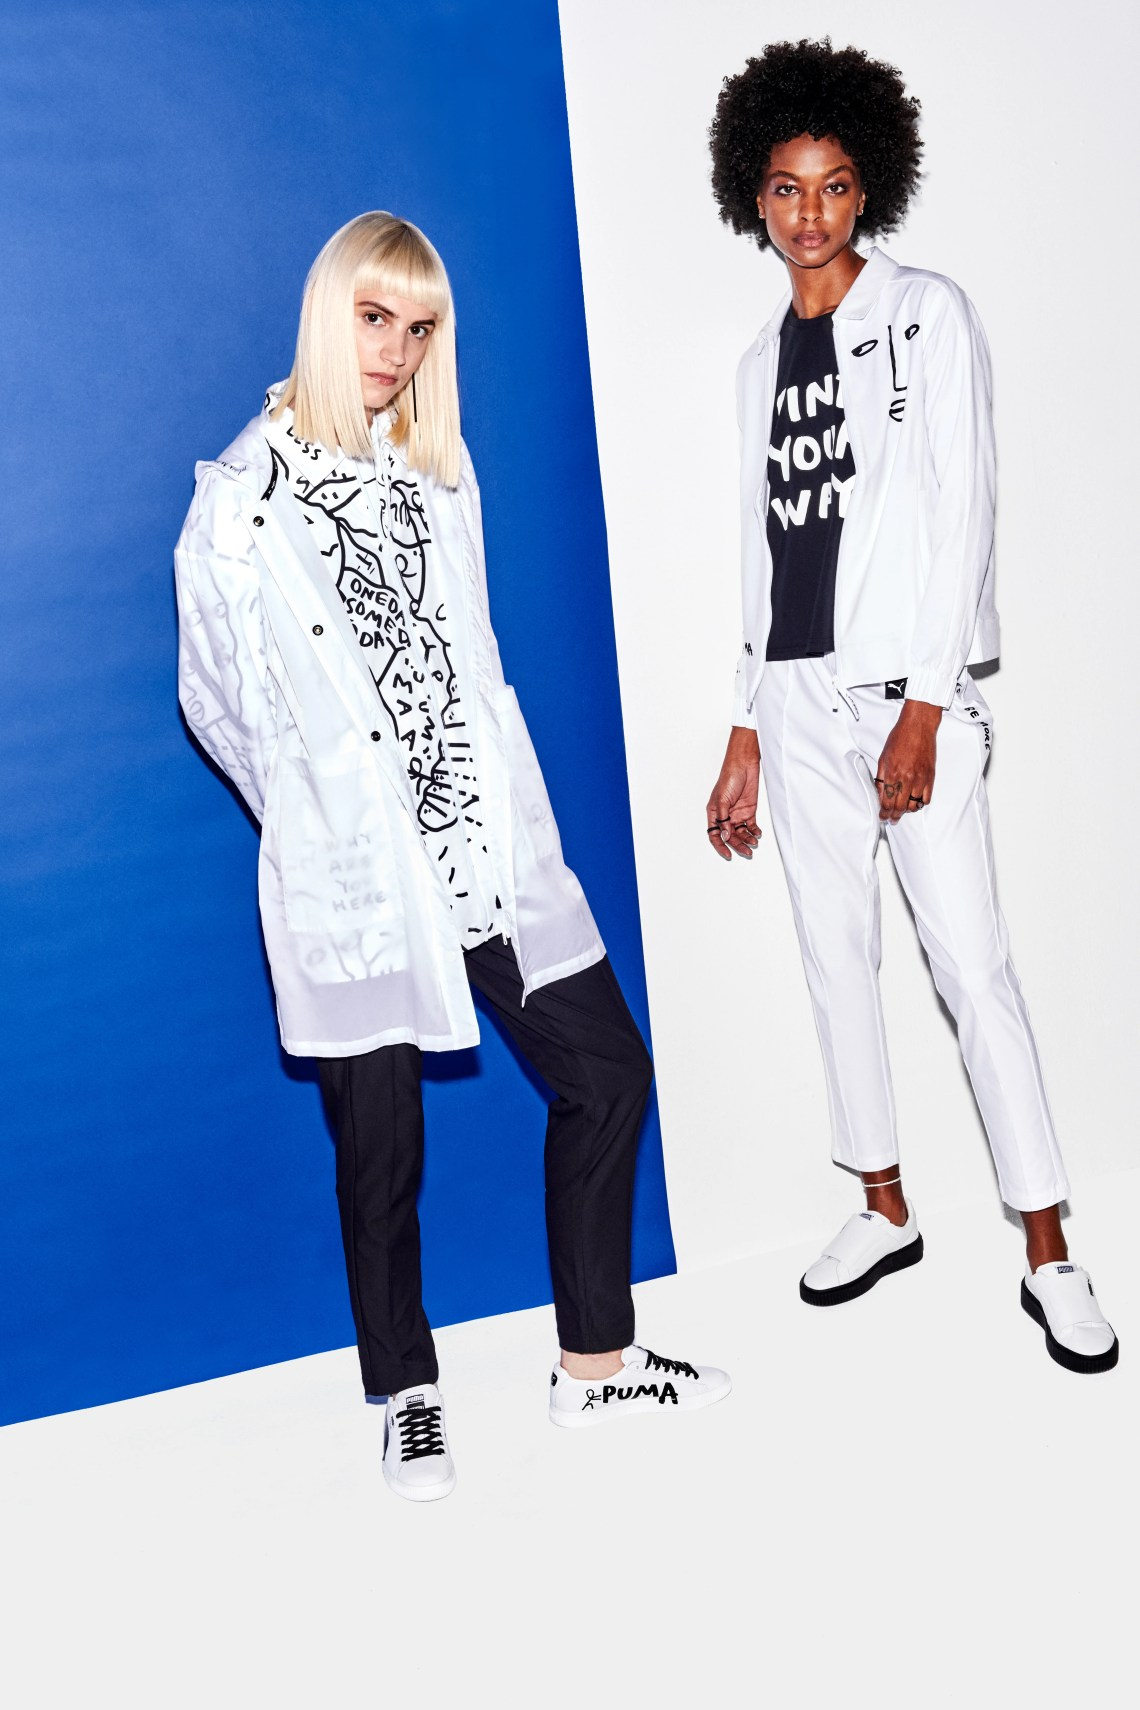 Shantell Martin x Puma Collection